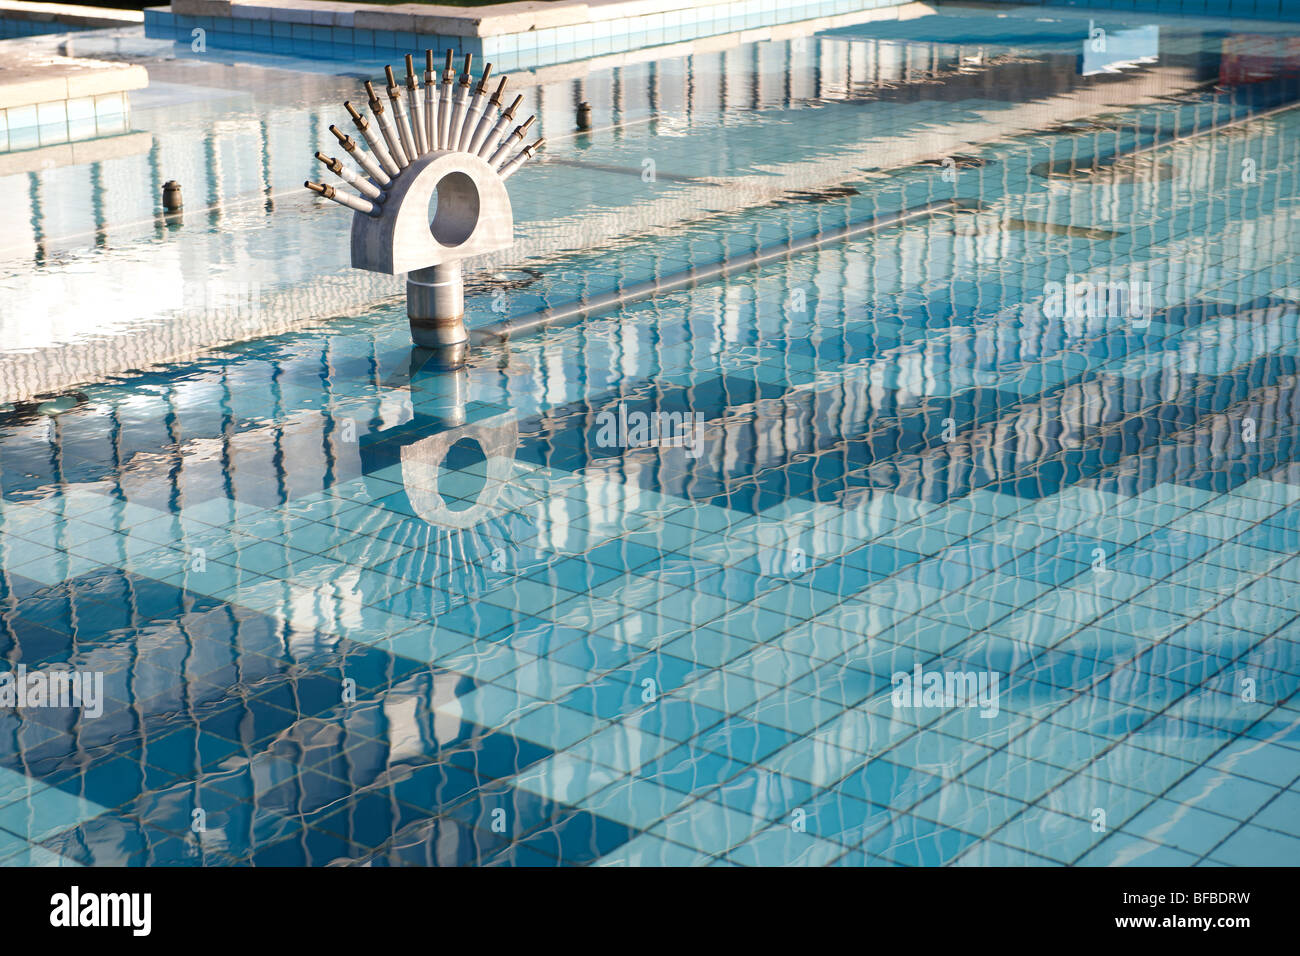 Urban textures - reflections in water with blue tiles - Stock Image